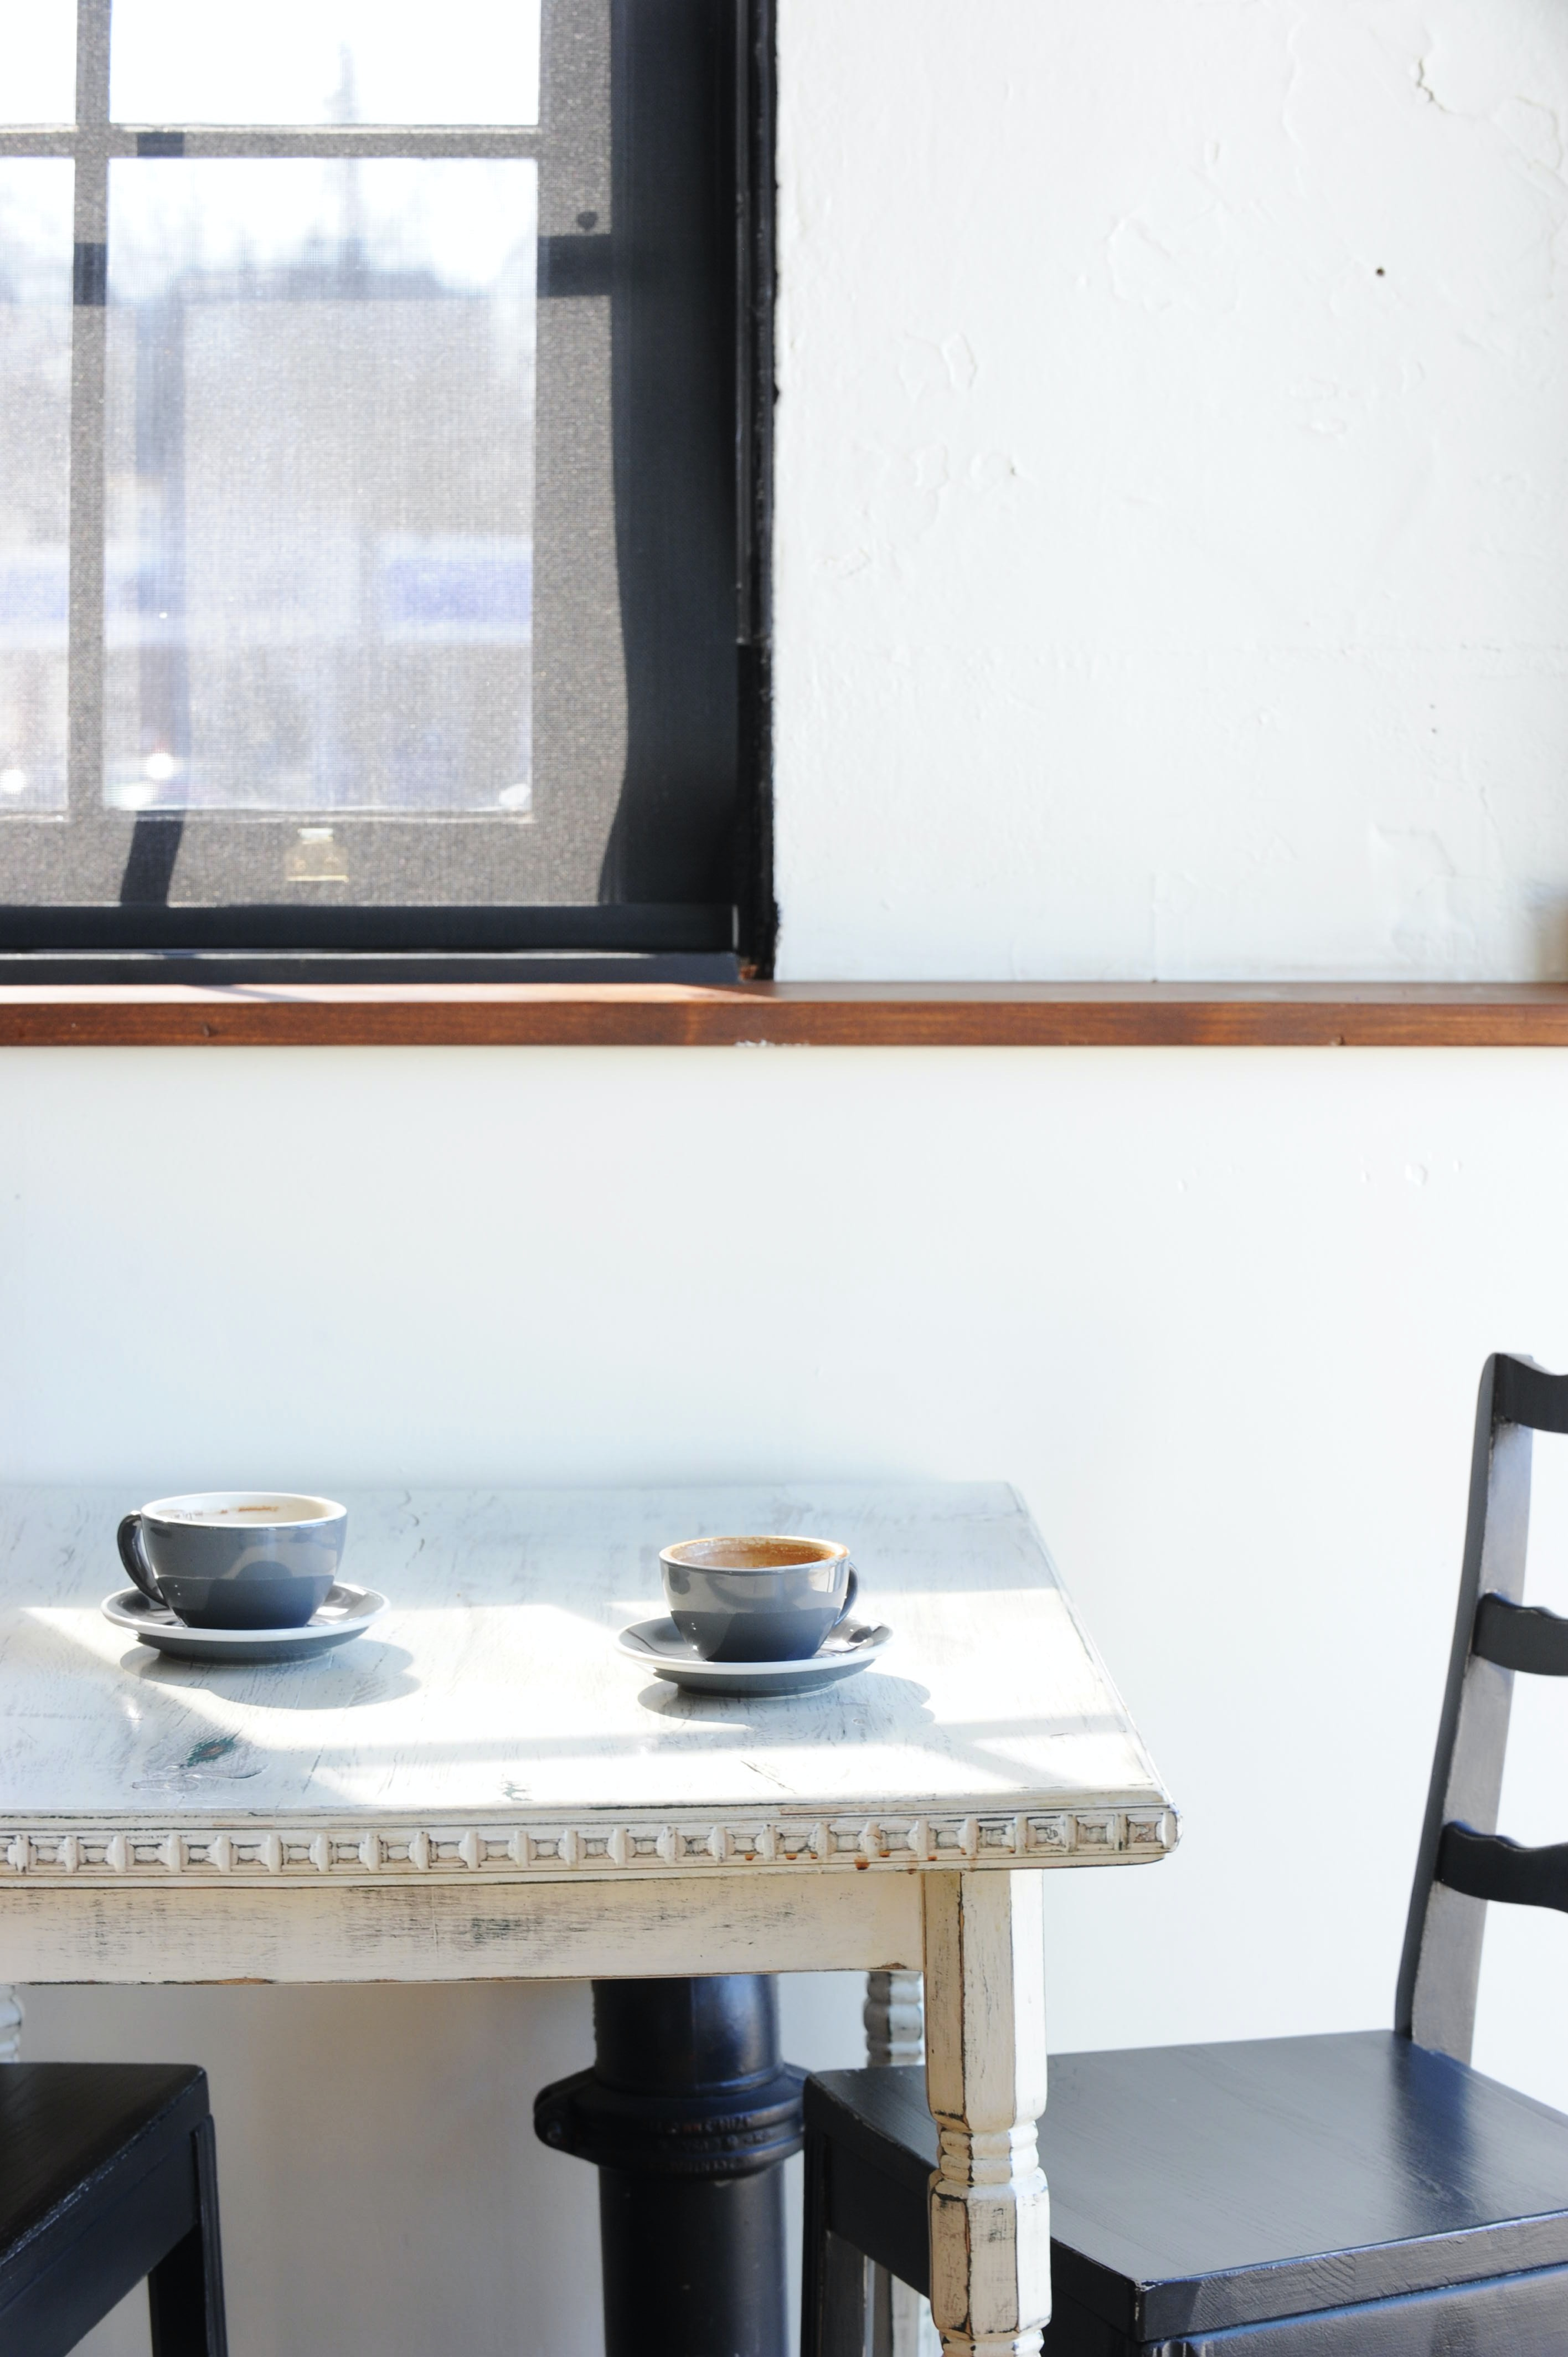 two cups on table